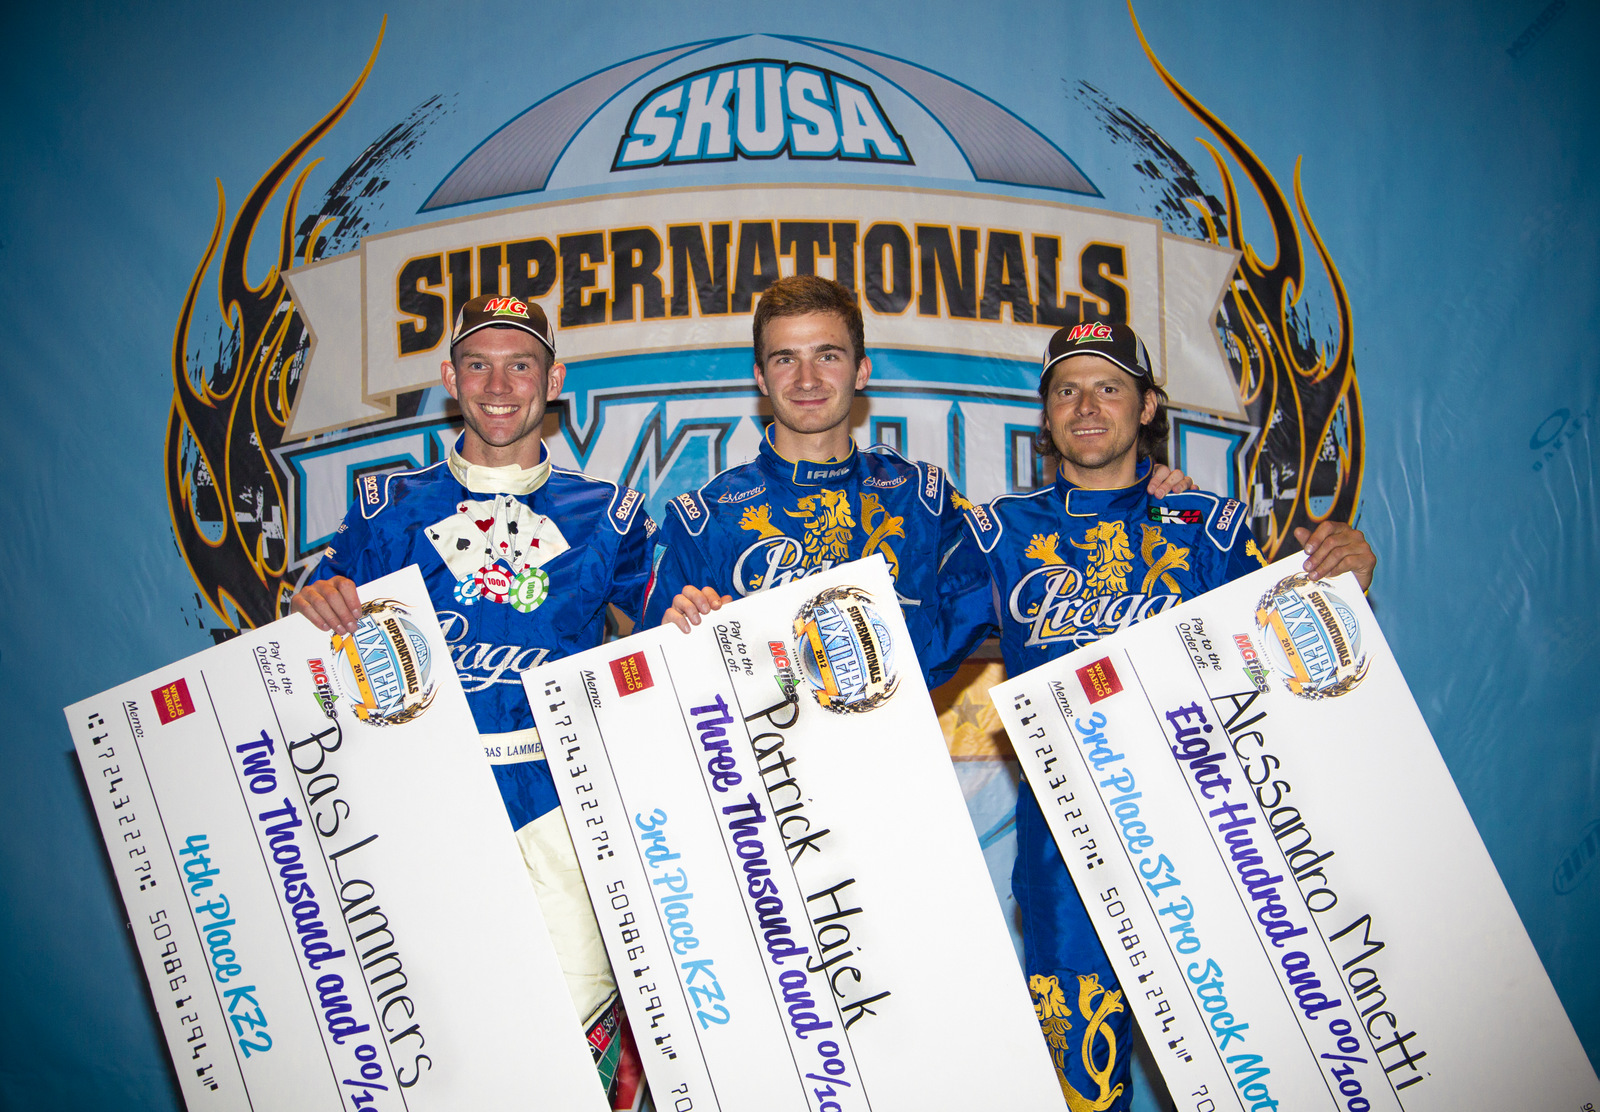 Multiple Podiums for Praga at 2012 Supernationals